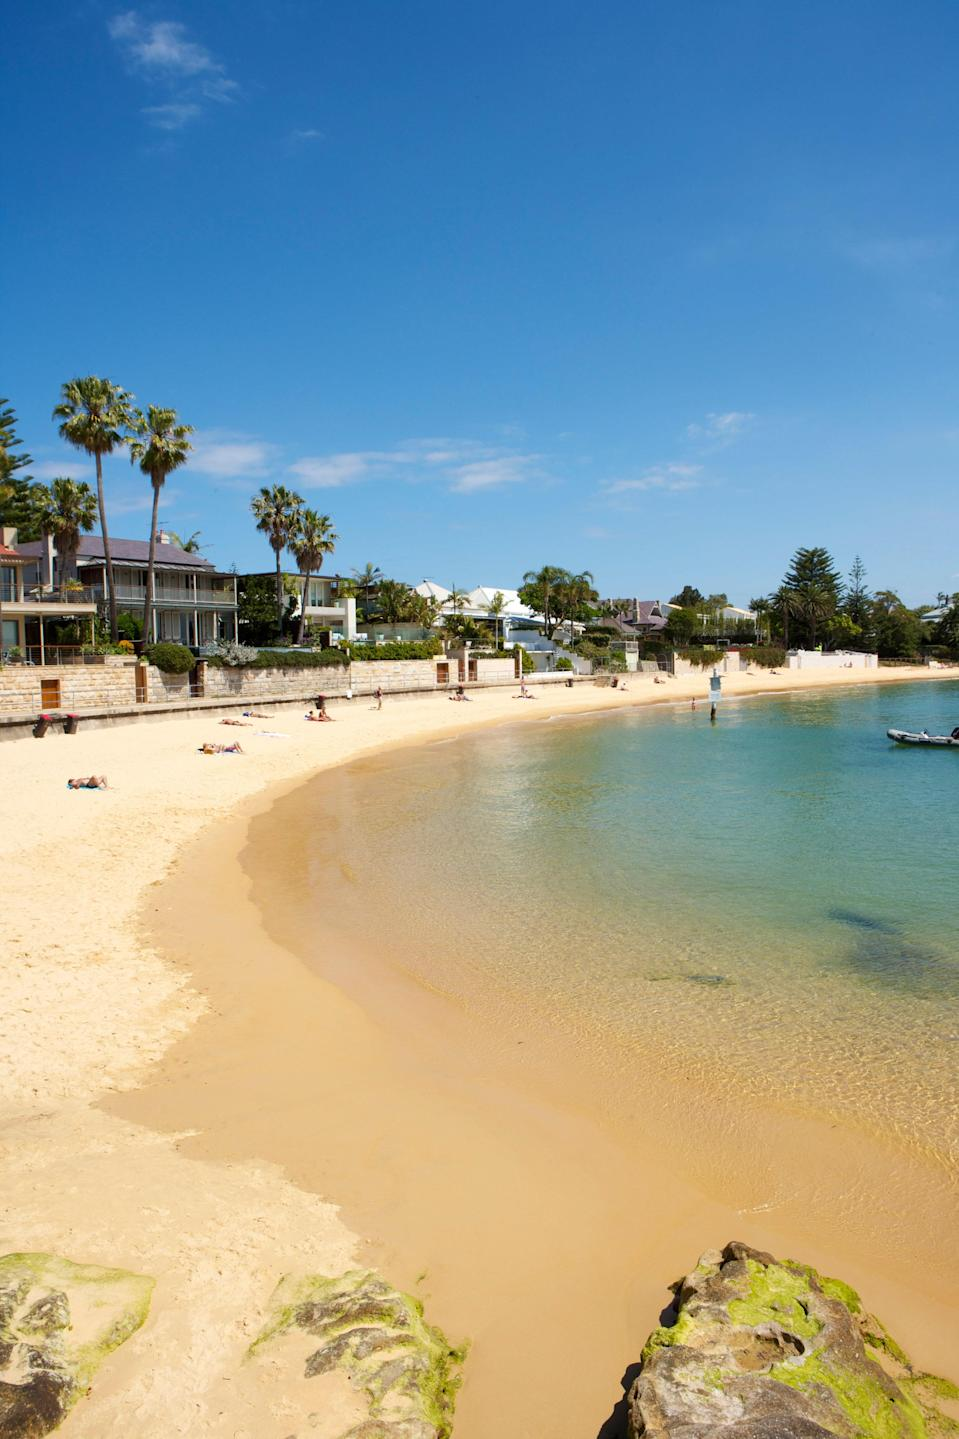 """<p><strong>Give us the wide-angle view: what kind of beach are we talking about?</strong><br> Cute little Camp Cove is the <a href=""""https://www.cntraveler.com/gallery/best-beaches-in-sydney?mbid=synd_yahoo_rss"""" rel=""""nofollow noopener"""" target=""""_blank"""" data-ylk=""""slk:Sydney beach"""" class=""""link rapid-noclick-resp"""">Sydney beach</a> of your dreams. A skinny arc of golden sand backed by private beach houses and palms and lapped by gentle turquoise water, it's only 262 yards long but makes up for its small size in charm. Camp Cove is located near Watsons Bay, just inland from the harbor's South Head.</p> <p><strong>How accessible is it?</strong><br> Camp Cove is an eight-minute walk from Watsons Bay Wharf, which you can access by taking a 23-minute ferry ride from Circular Quay. Buses run to Watsons Bay from Bondi (380, 24 minutes) and the city center (324 or 325, about 50 minutes). There's limited parking near the beach. Don't leave without exploring Watsons Bay, Australia's oldest fishing village, whose tranquil lanes are now lined with pastel flower-fringed cottages. From the wharf, turn left up Marine Parade, then take Cove and Pacific streets; or, if you've arrived by bus at the top of Robertson Park, walk along Cliff Street from Military Road.</p> <p><strong>Decent services and facilities, would you say?</strong><br> Headlands at each end of Camp Cove offer changing rooms with toilets and shady picnicking spots. There's an outdoor shower at the beach's north end beside Camp Cove Kiosk, which sells snacks, drinks, and popsicles. Alternatively, back at the wharf, Watsons Bay Boutique Hotel's all-day Beach Club serves delicious beer-battered fish and chips, fried calamari, burgers, and salads, plus refreshing cocktails, on three alfresco decks with harbor views. Next door, the fancier Doyles restaurant serves seafood on outdoor tables. You'll find ice cream stands and cafes on Military Road.</p> <p><strong>How's the actual beach stuff—sand and surf?</strong><br> This deli"""